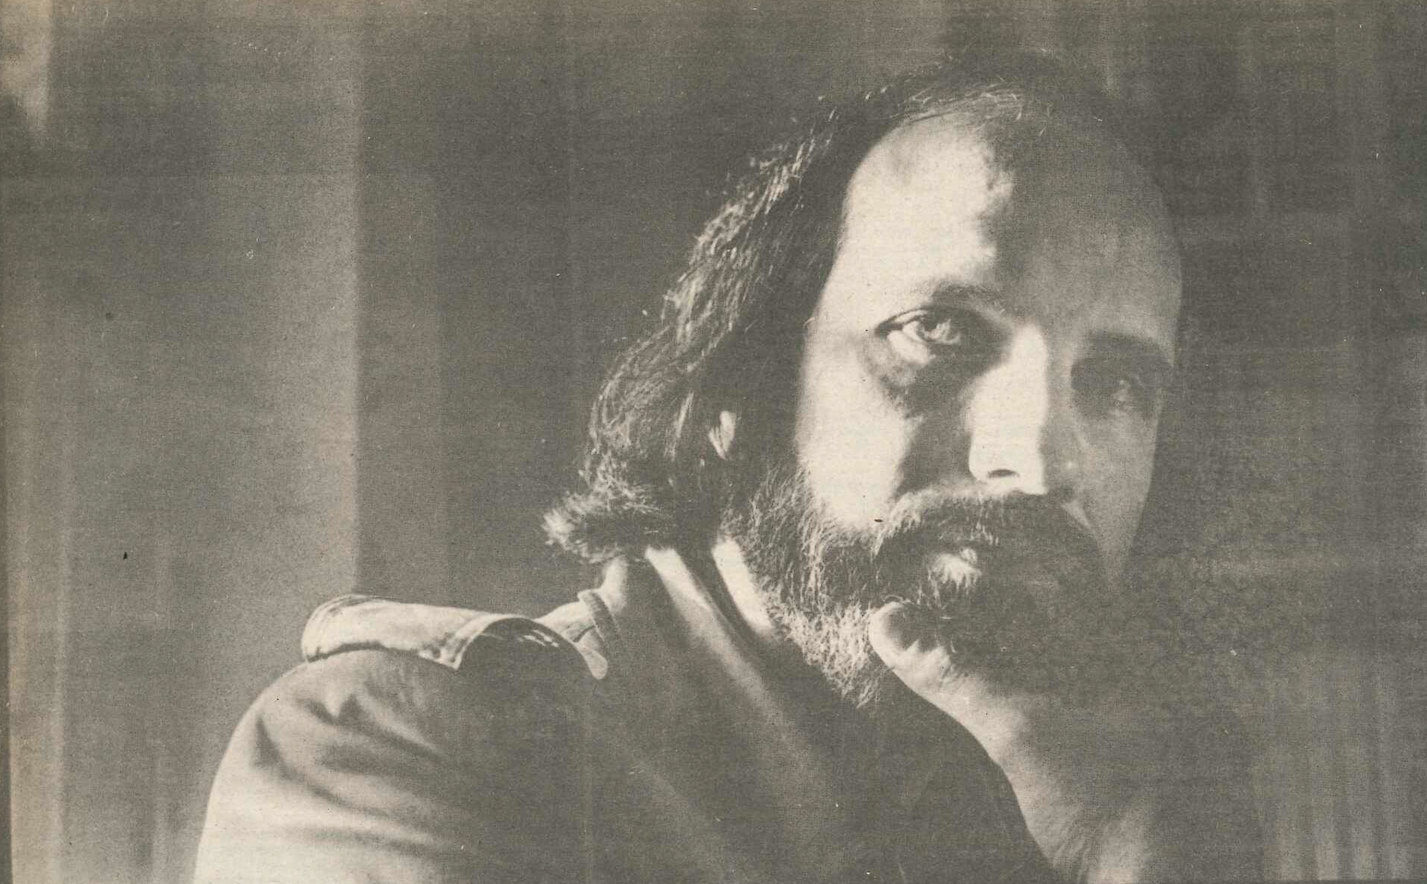 Brian De Palma in the July 23, 1980, issue of the Village Voice